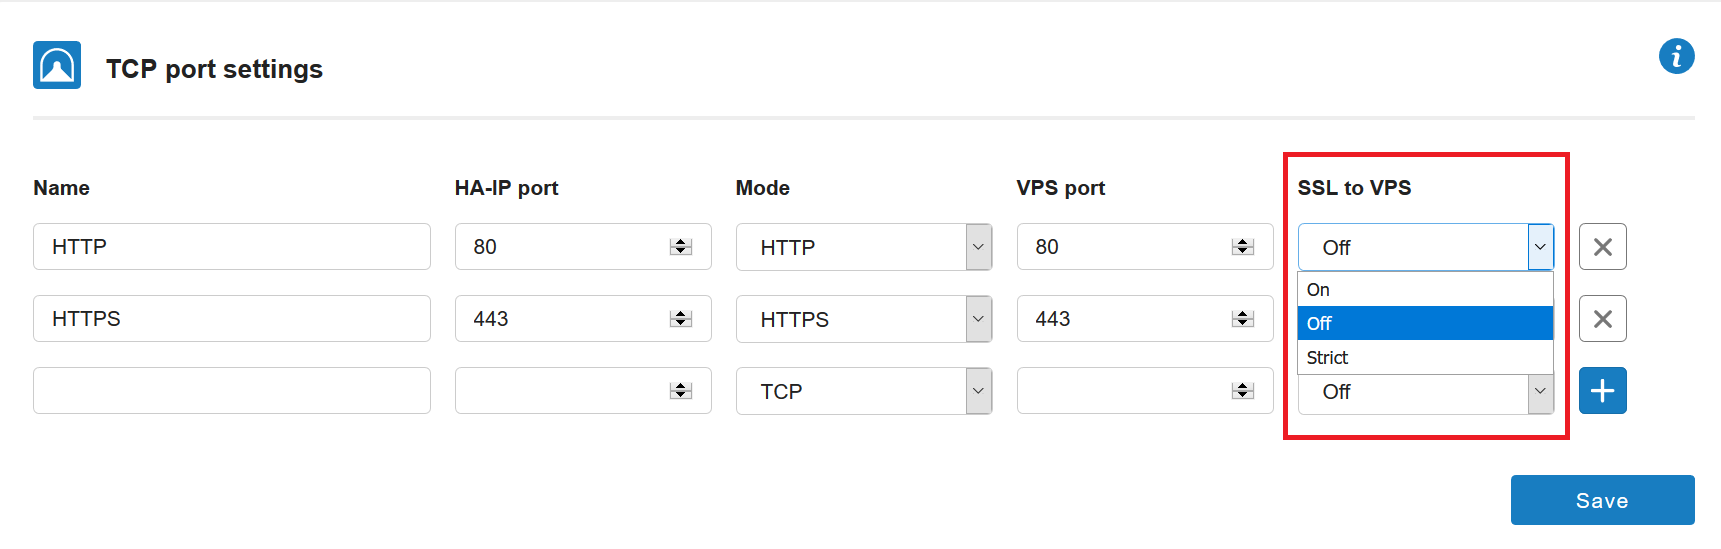 ha-ip tcp port settings ssl options